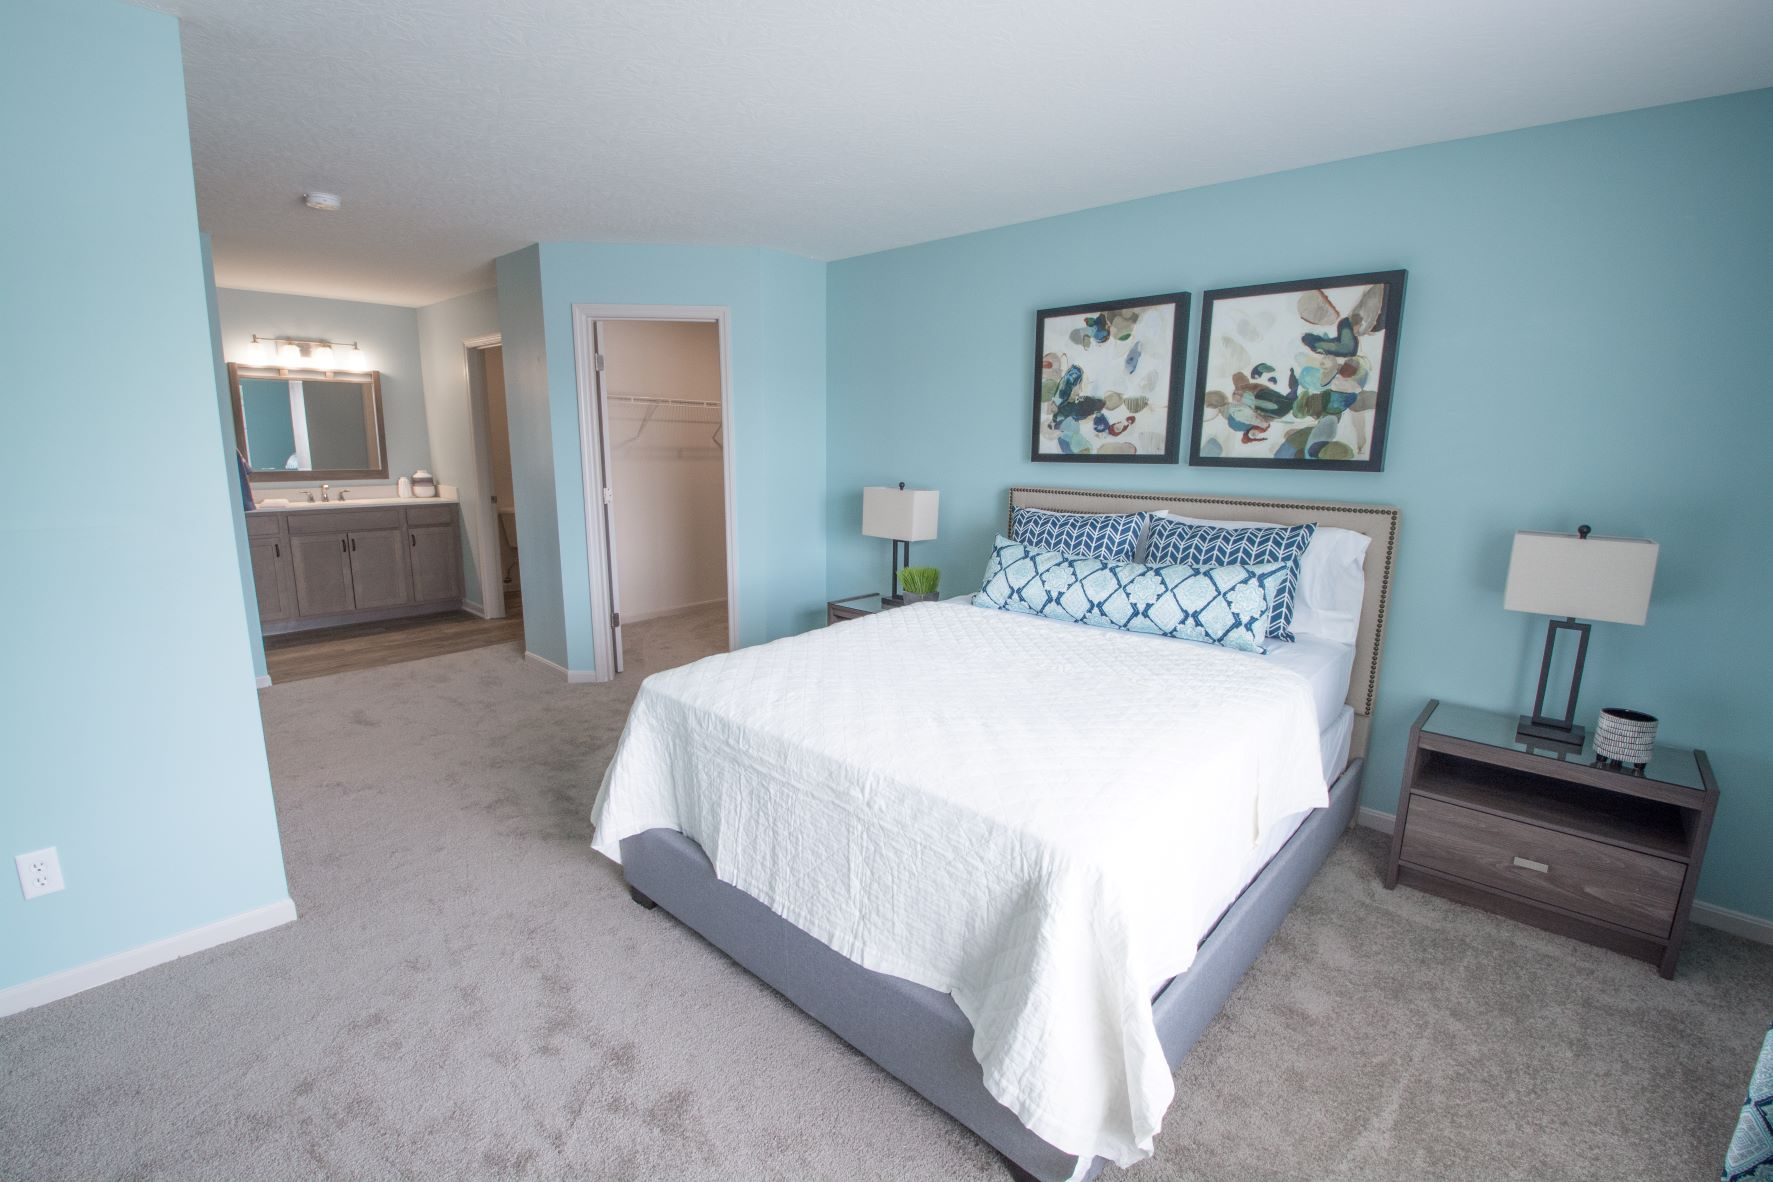 One and Two Bedroom Apartments at Stone Bridge Apartments in Mason, Ohio